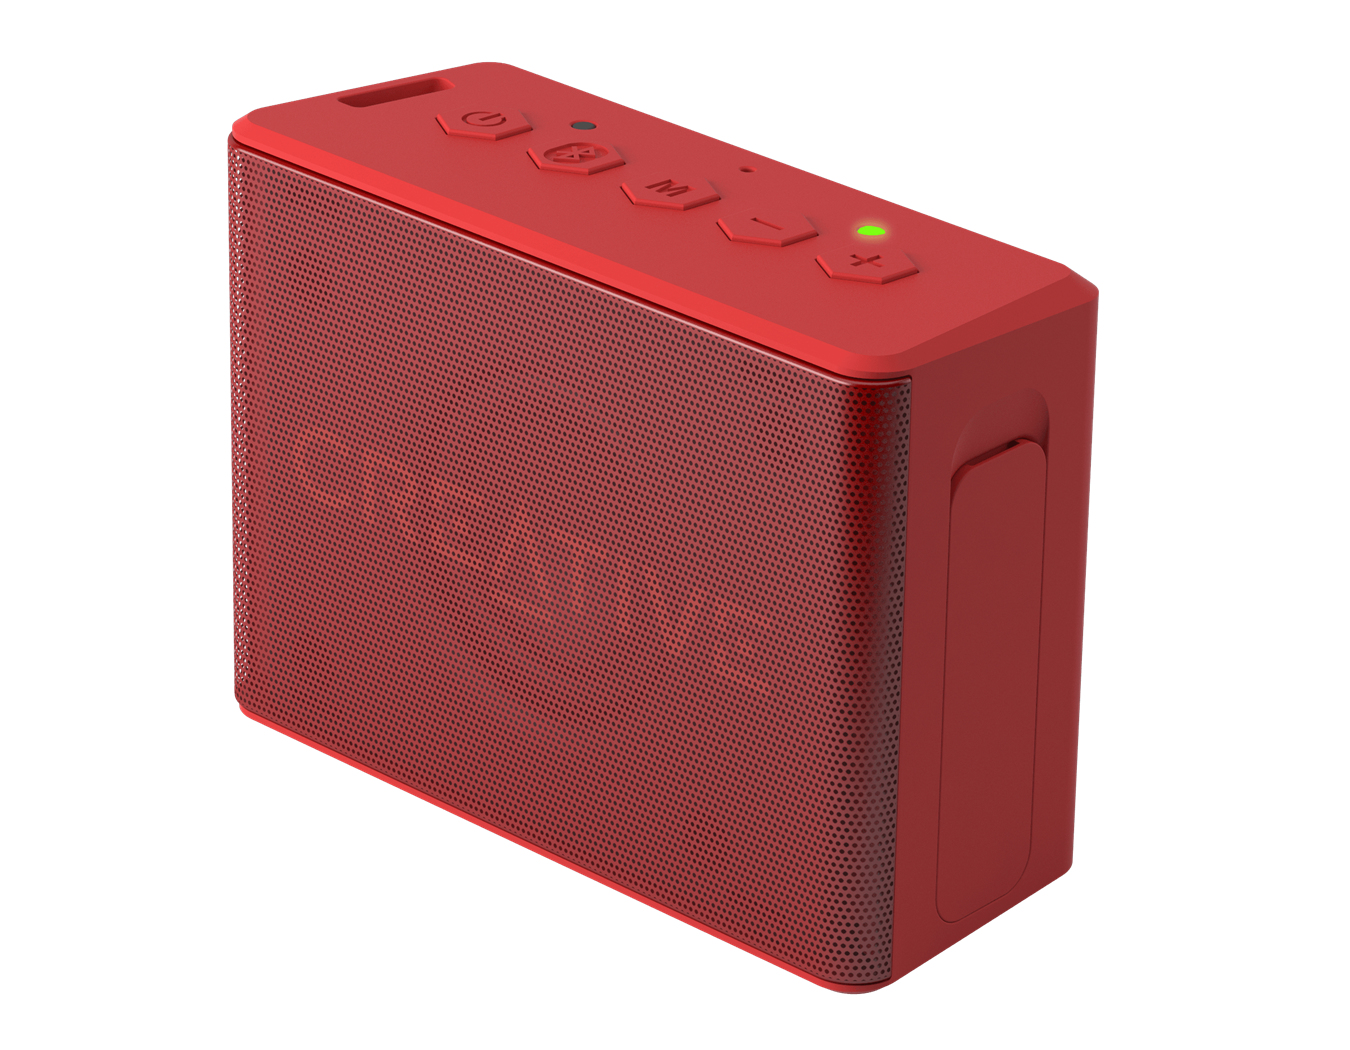 Creative MUVO 2c Stereo Rechteck Rot Rot